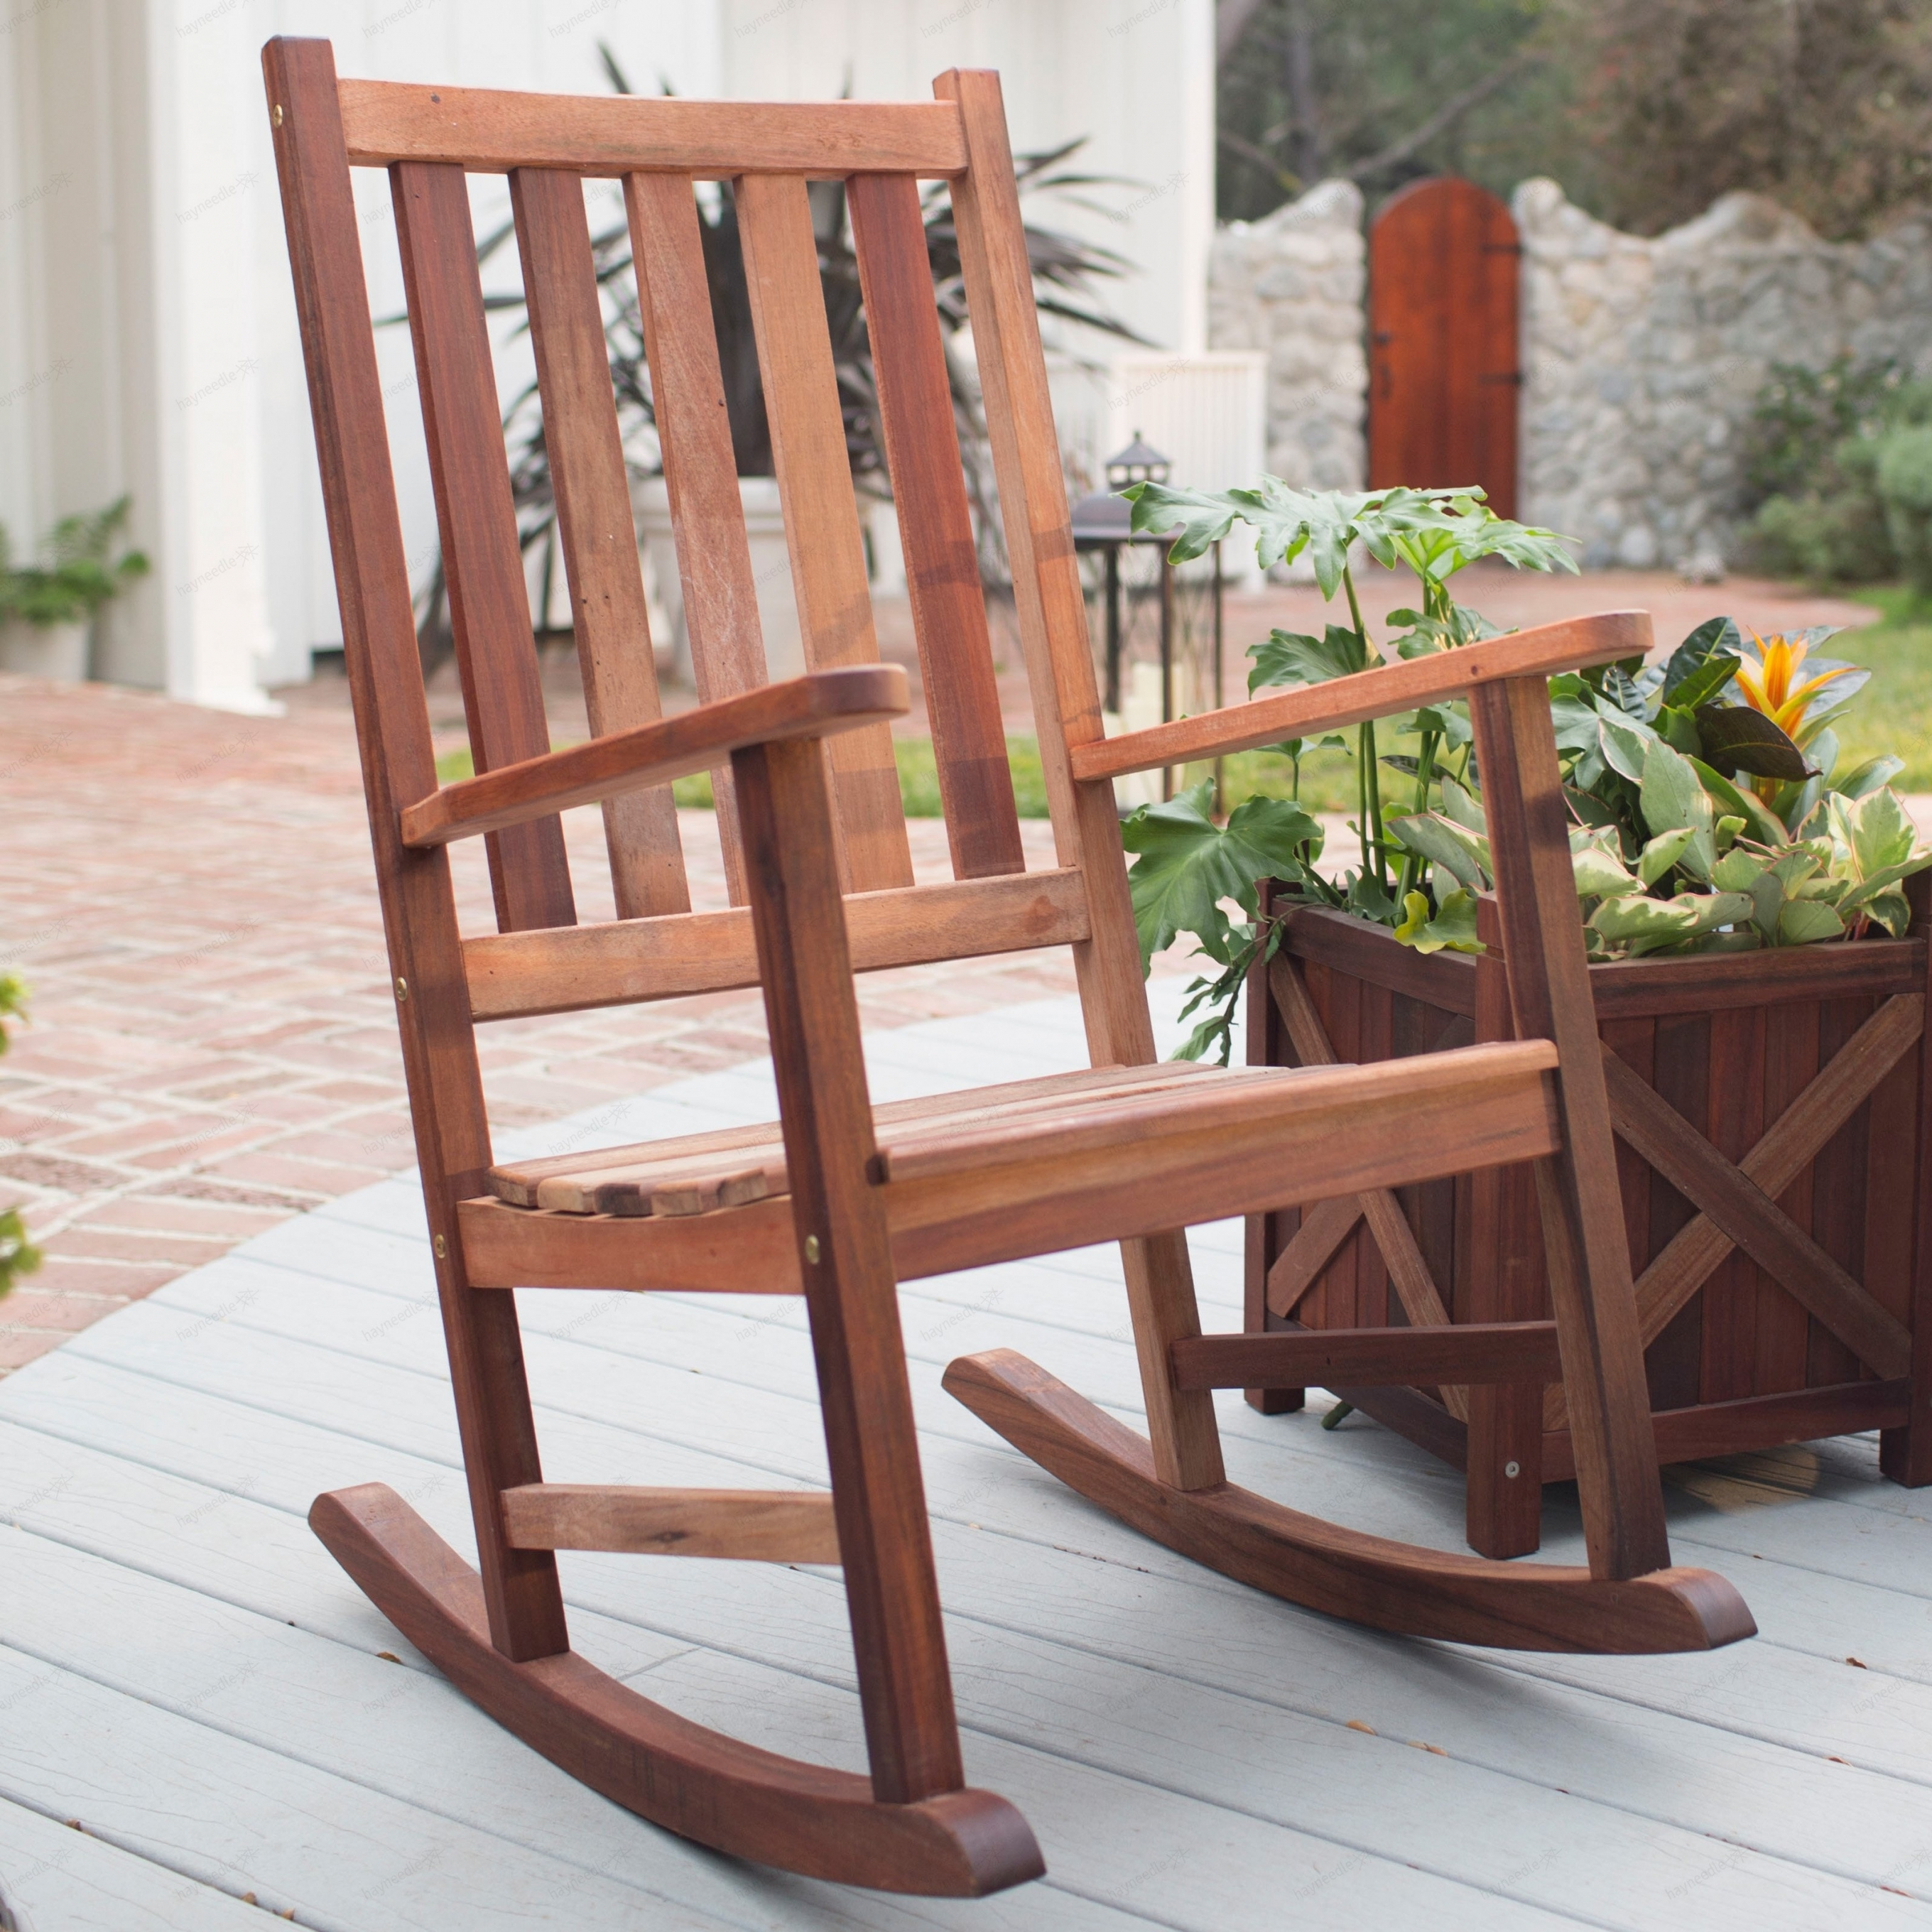 Chair | Walnut Rocking Chair Black Wooden Rocking Chairs Patio In Wooden Patio Rocking Chairs (#5 of 15)